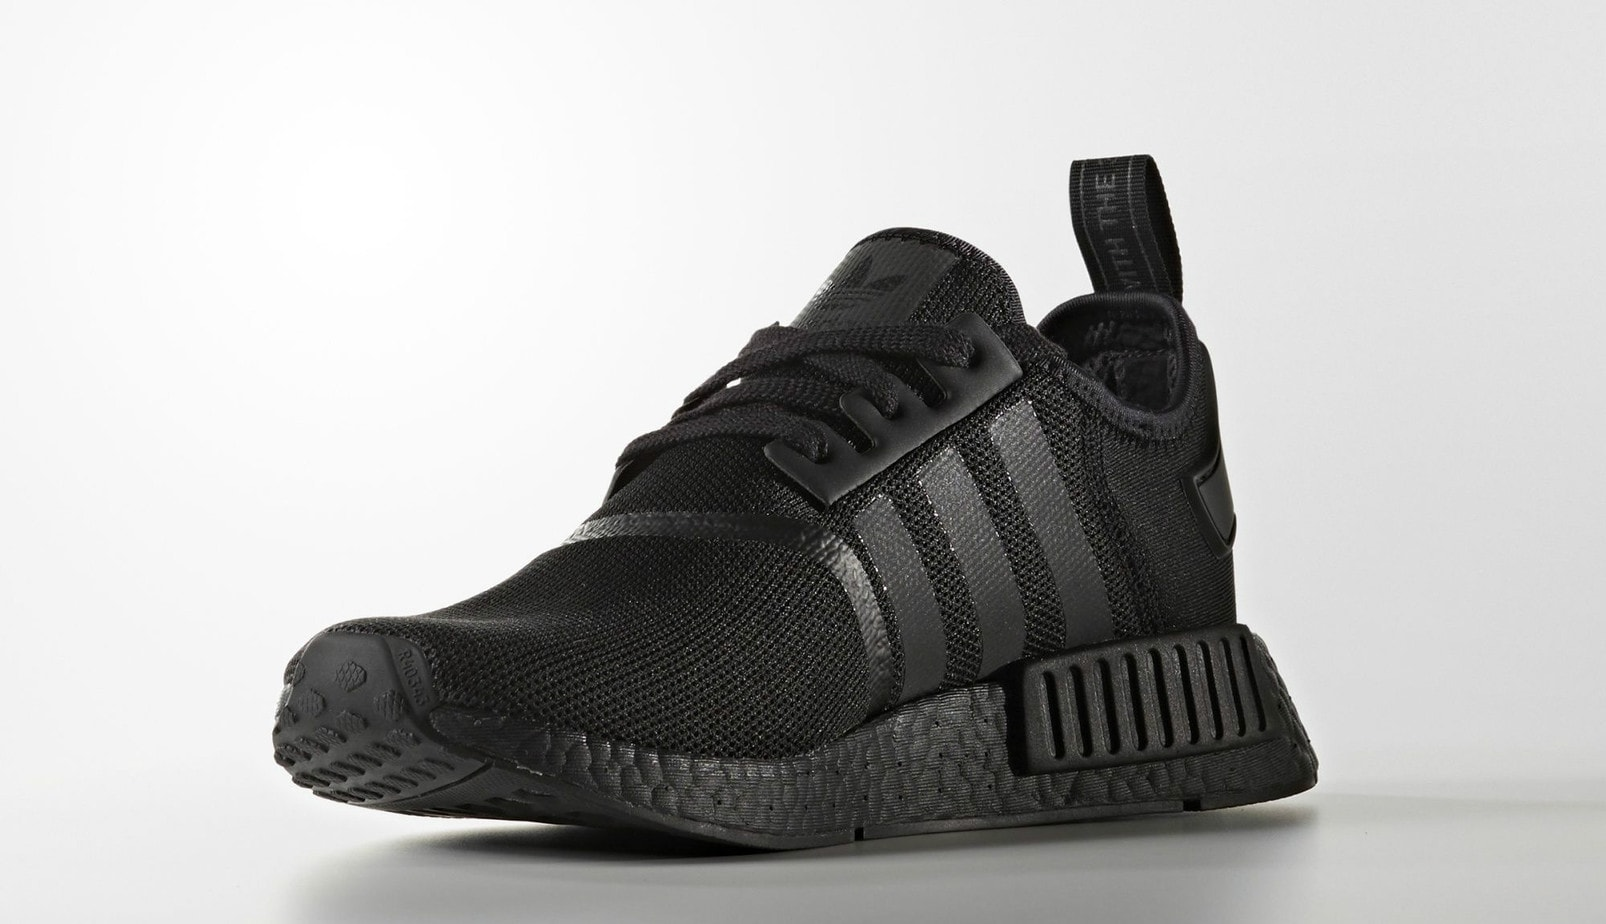 adidas nmd r1 triple black release date justfreshkicks. Black Bedroom Furniture Sets. Home Design Ideas